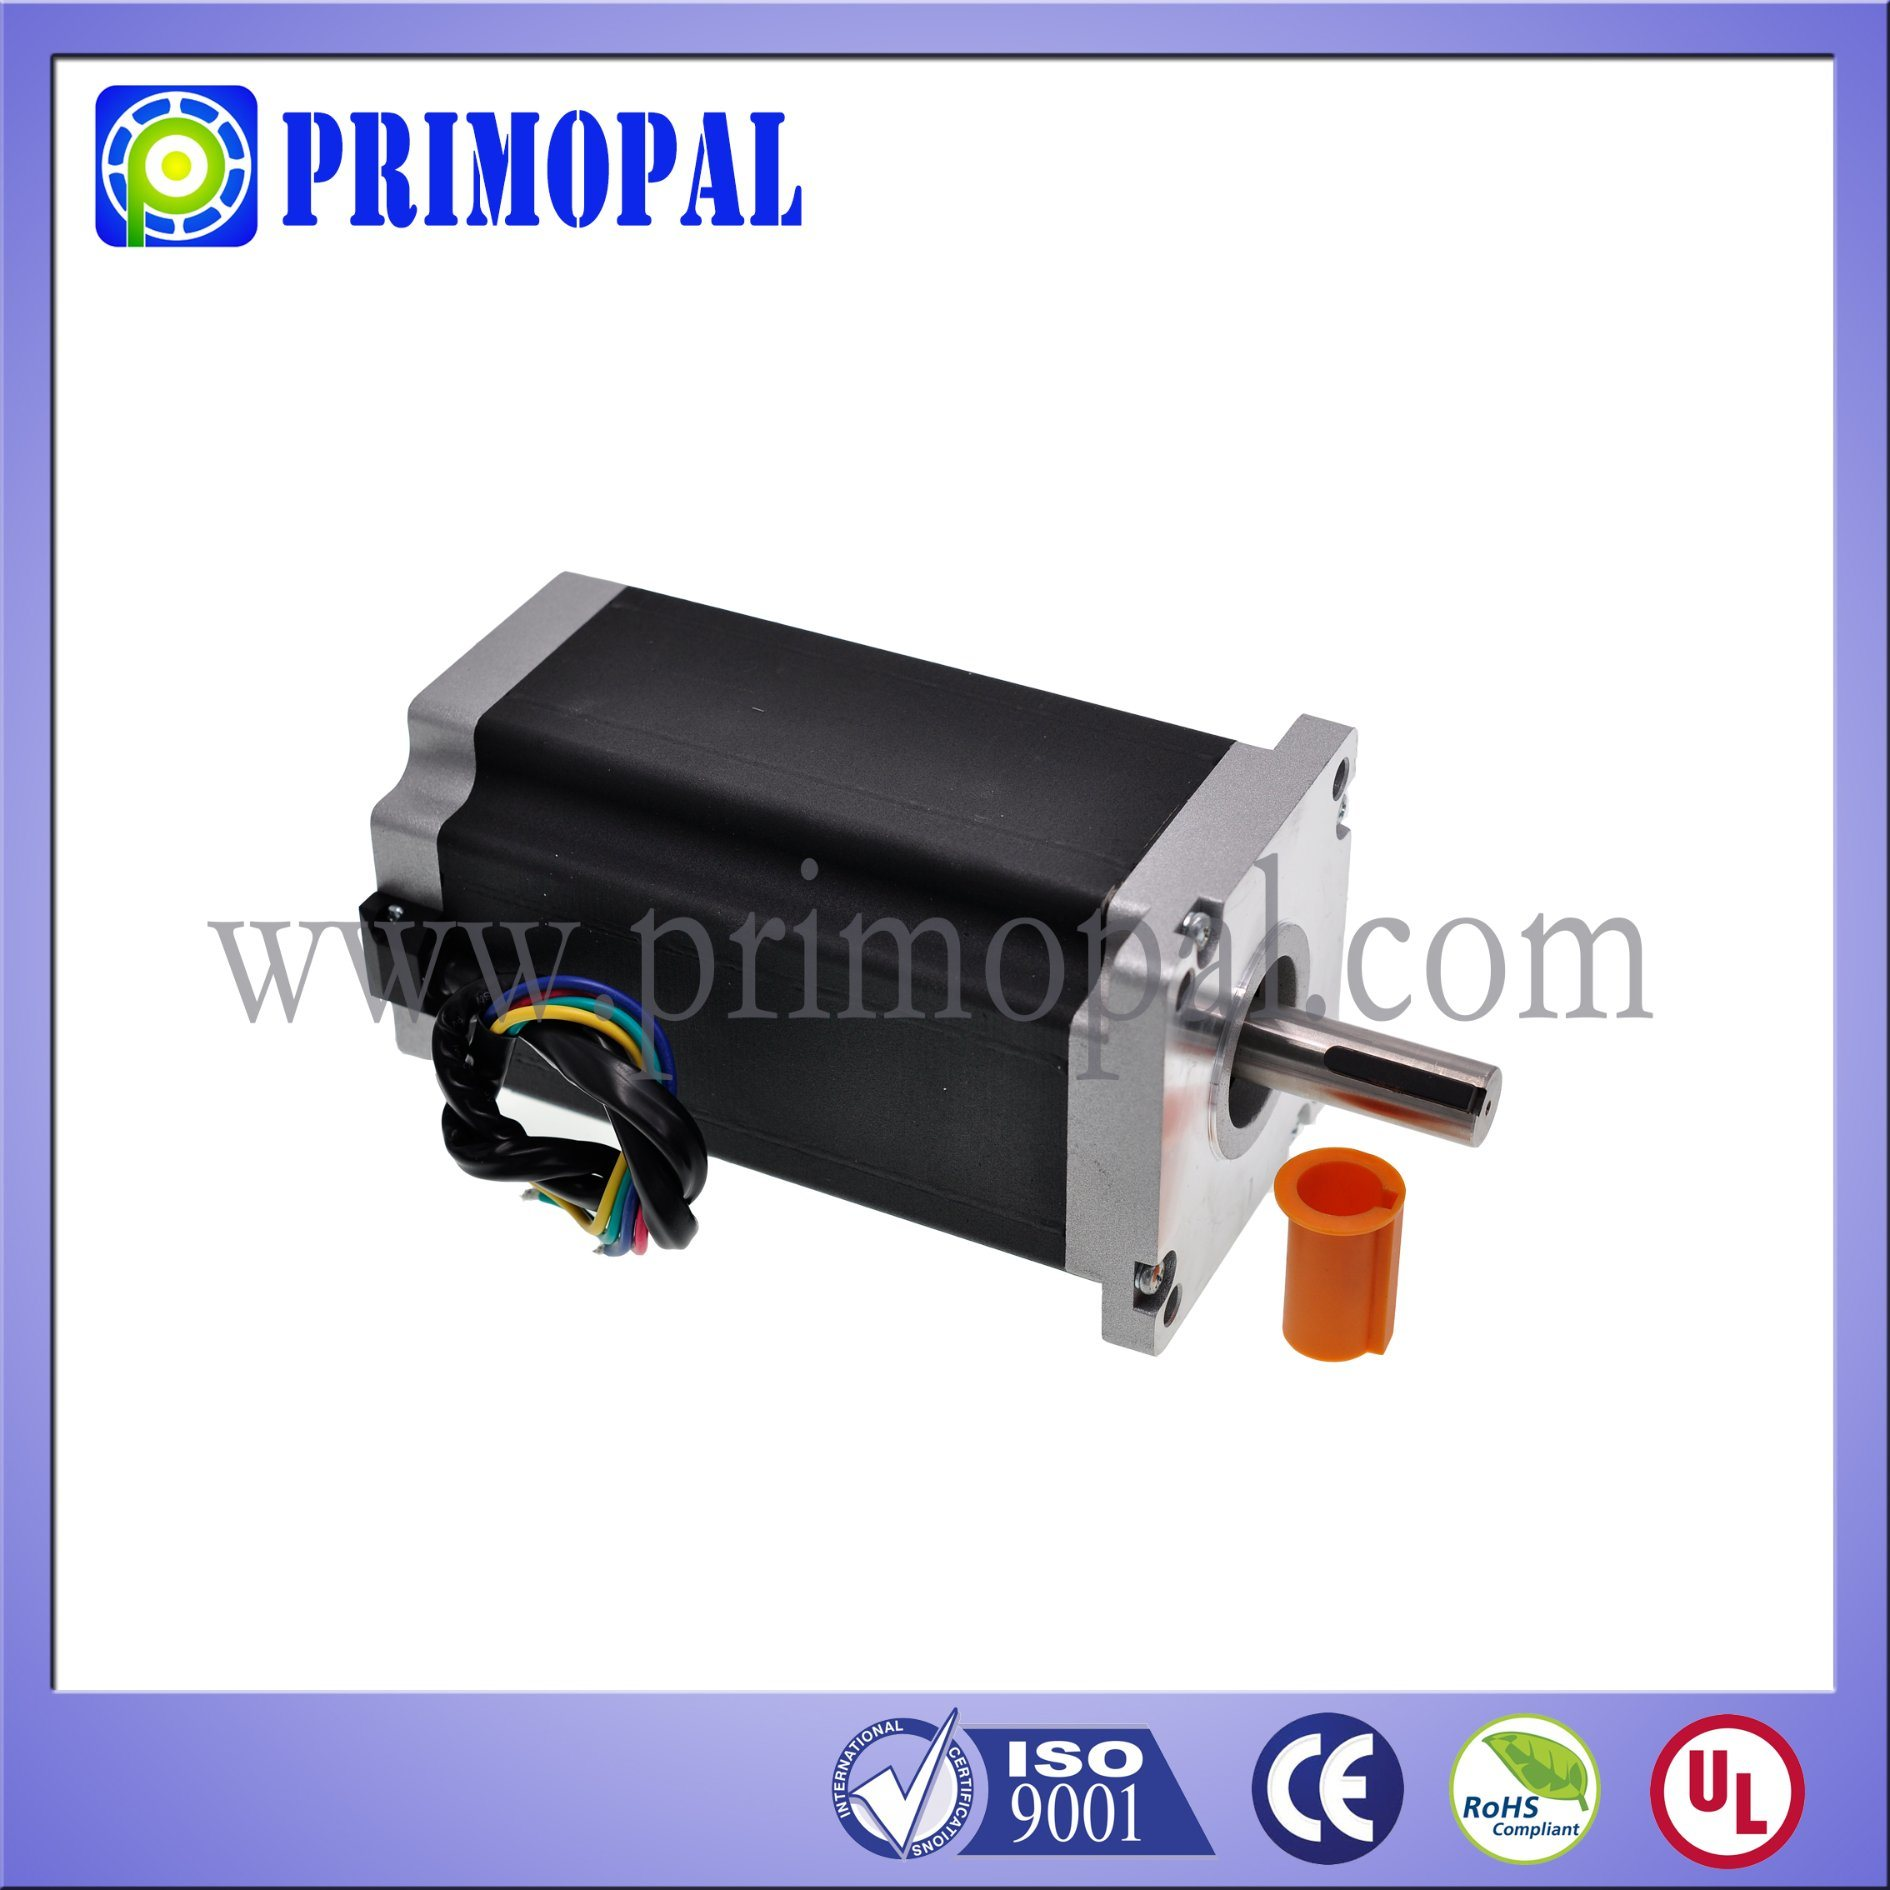 1.2 Degree 3 Phase NEMA 42 Stepper Motor